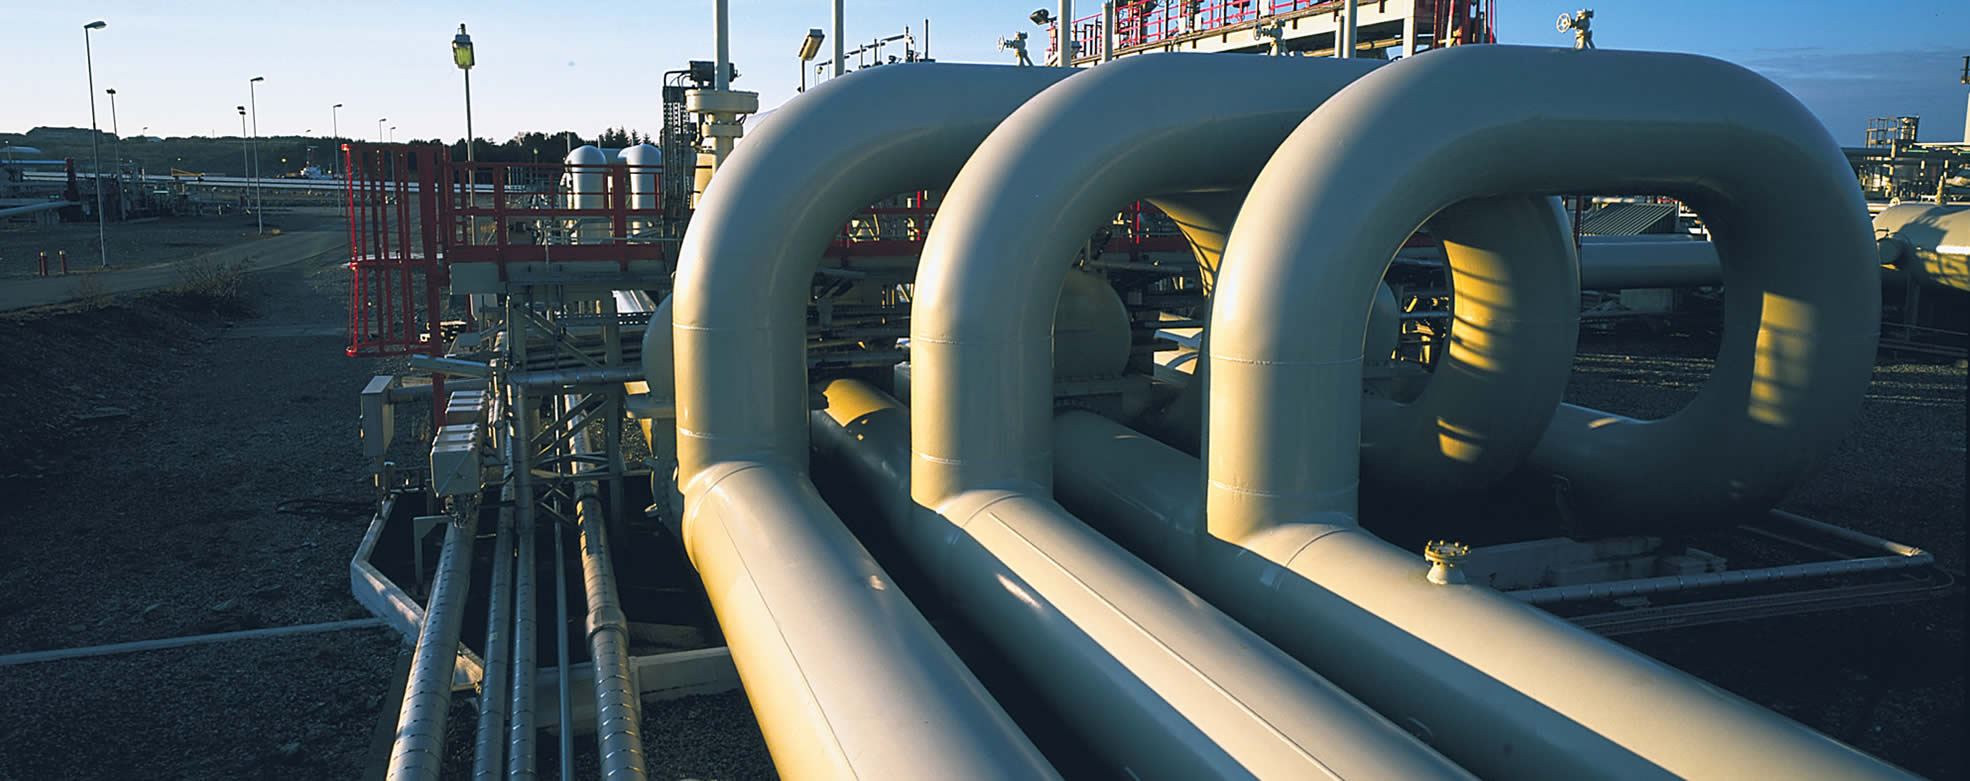 Pipe Stress Analysis and Engineering